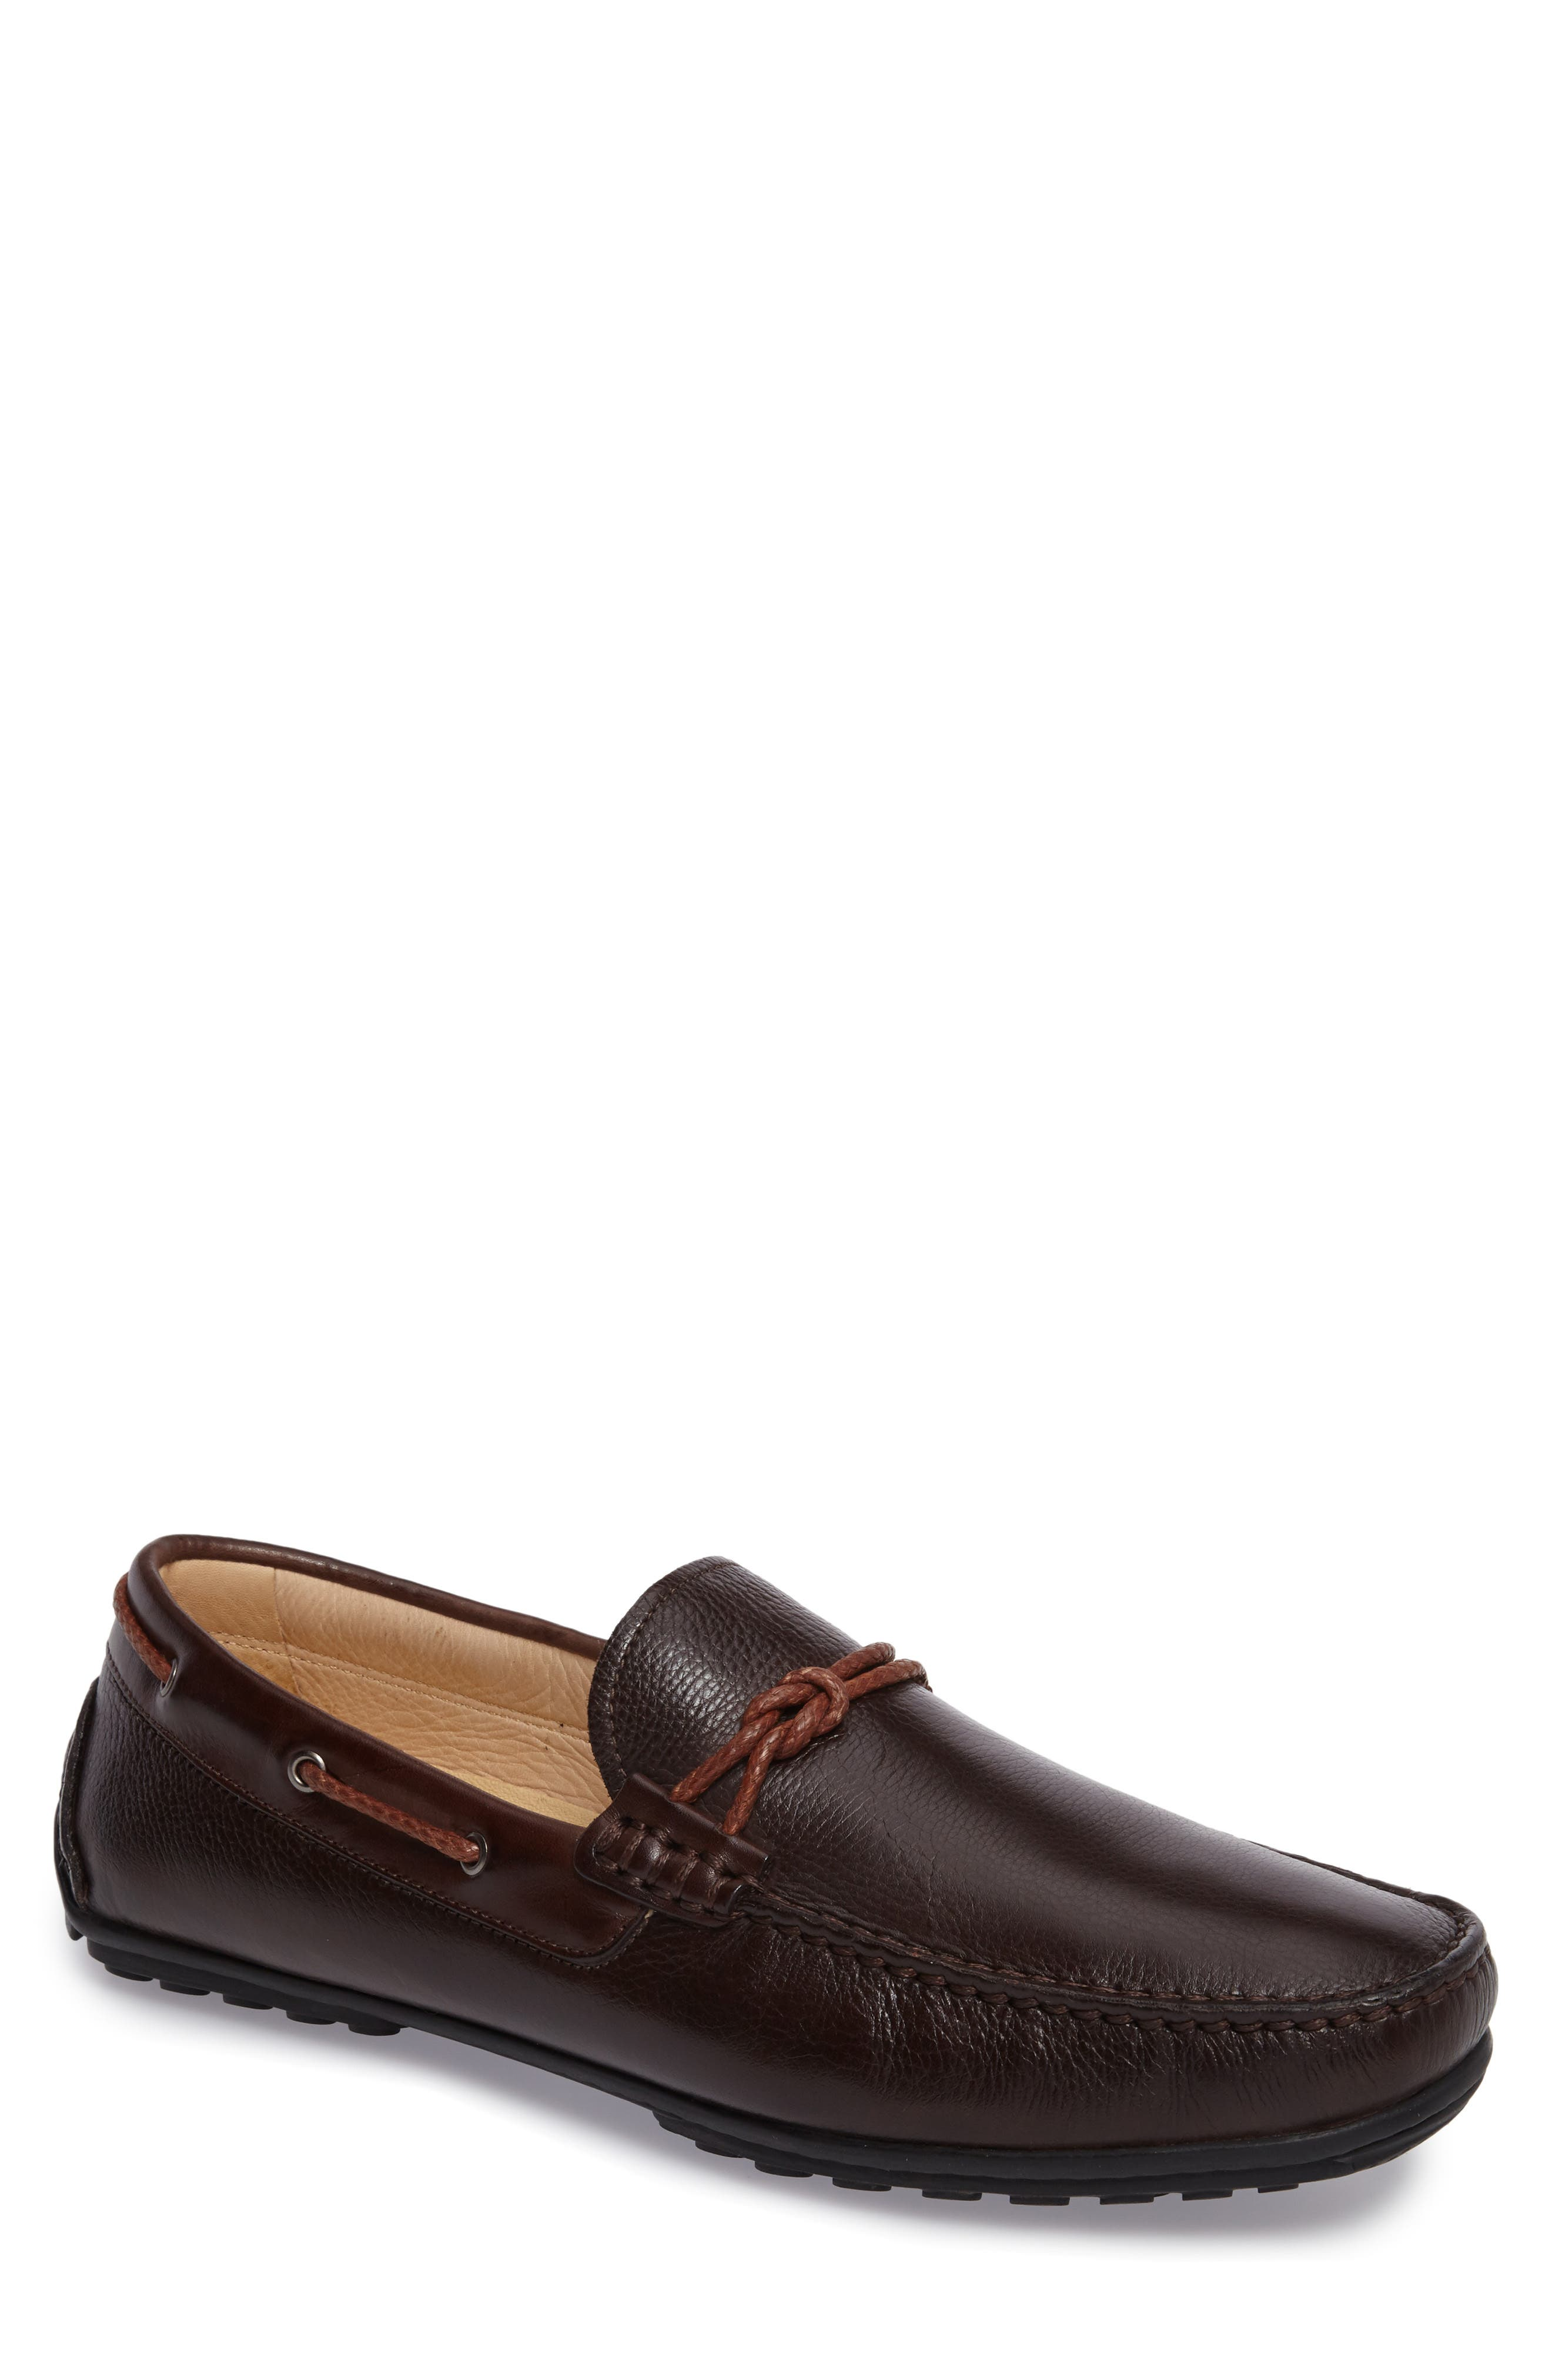 Anatomic & Co Itapira Driving Shoe (Men)